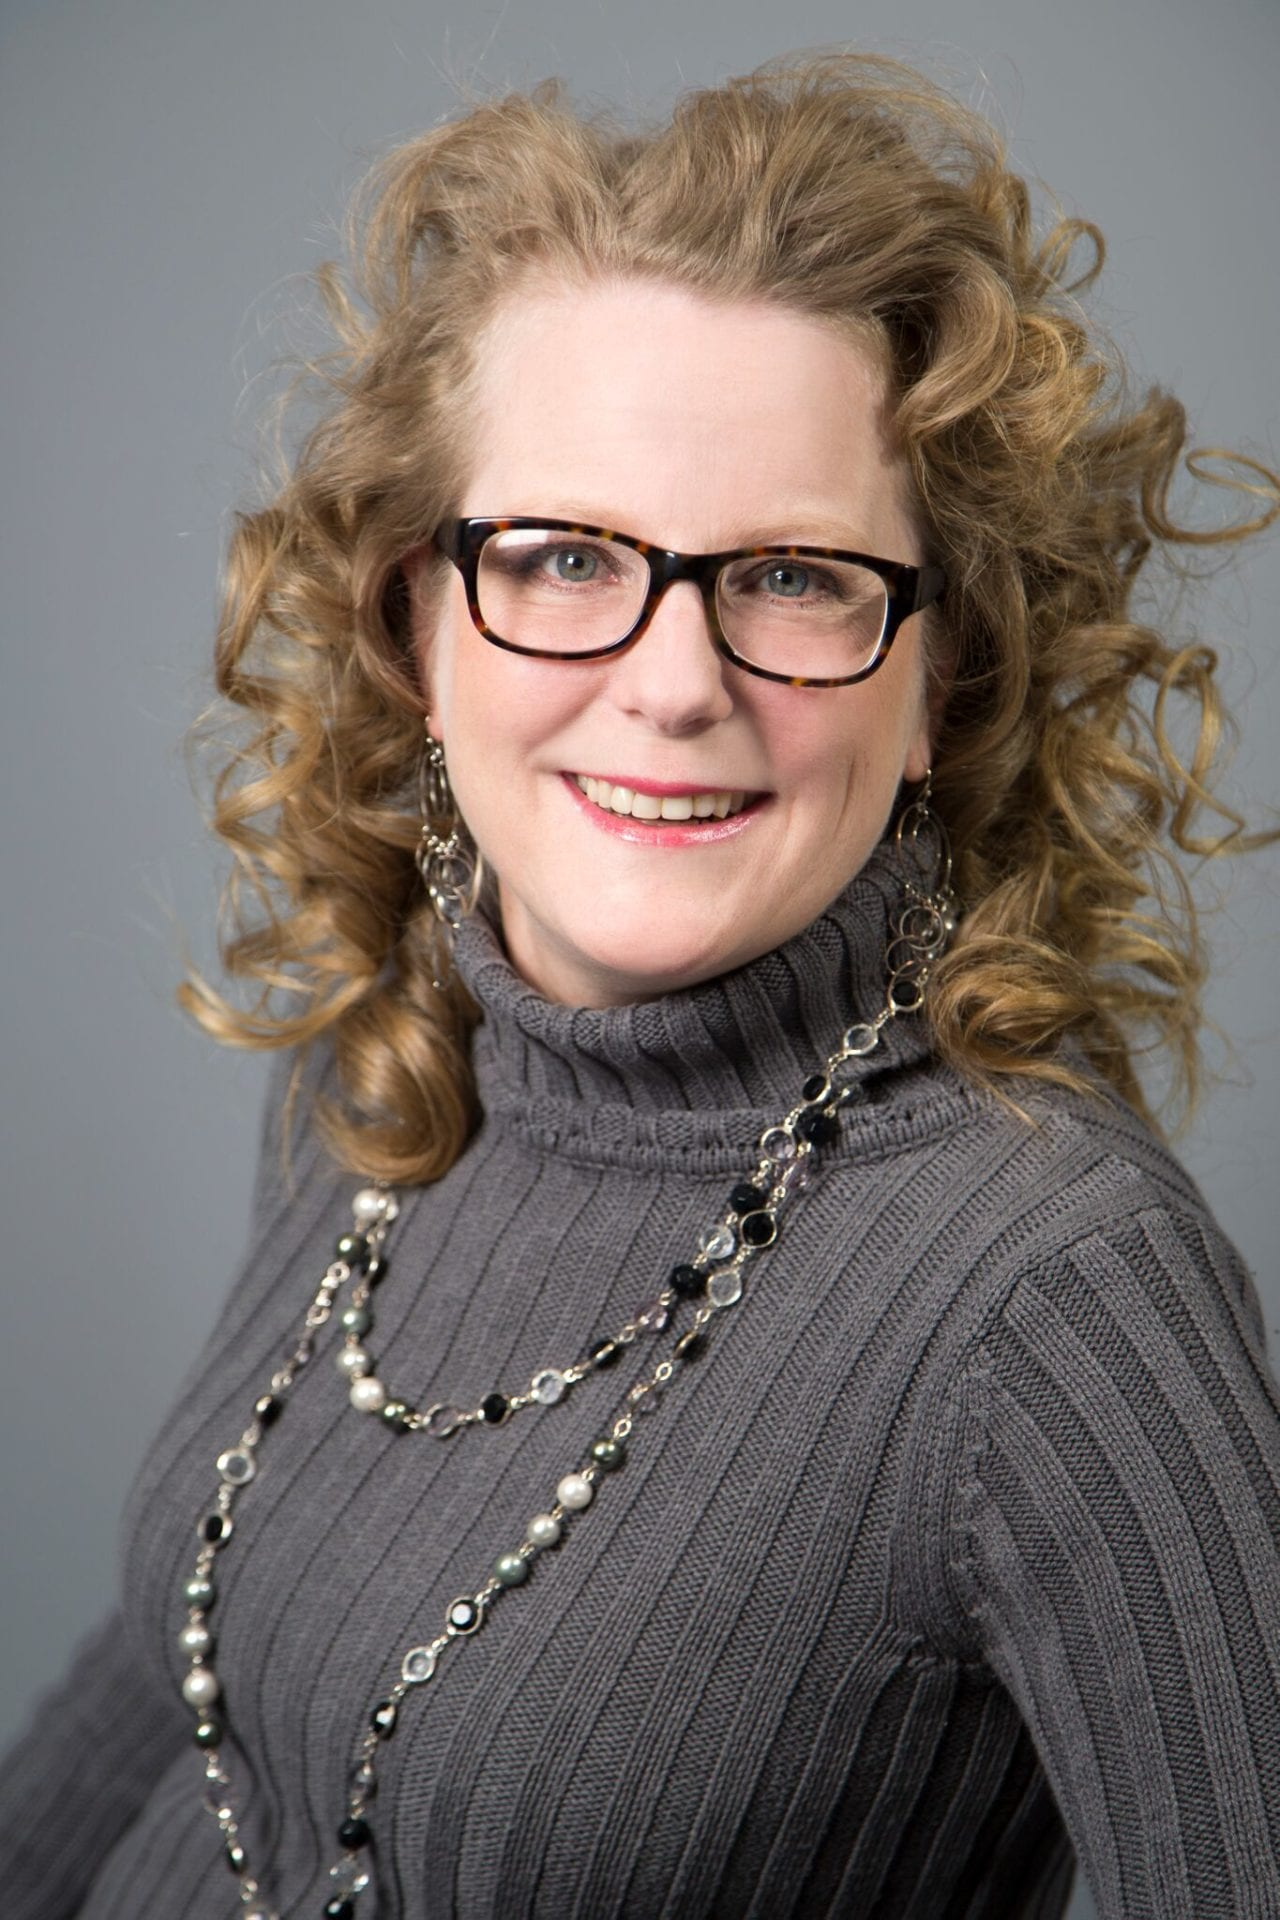 Wendy Weisse – VP, Media & Consumables